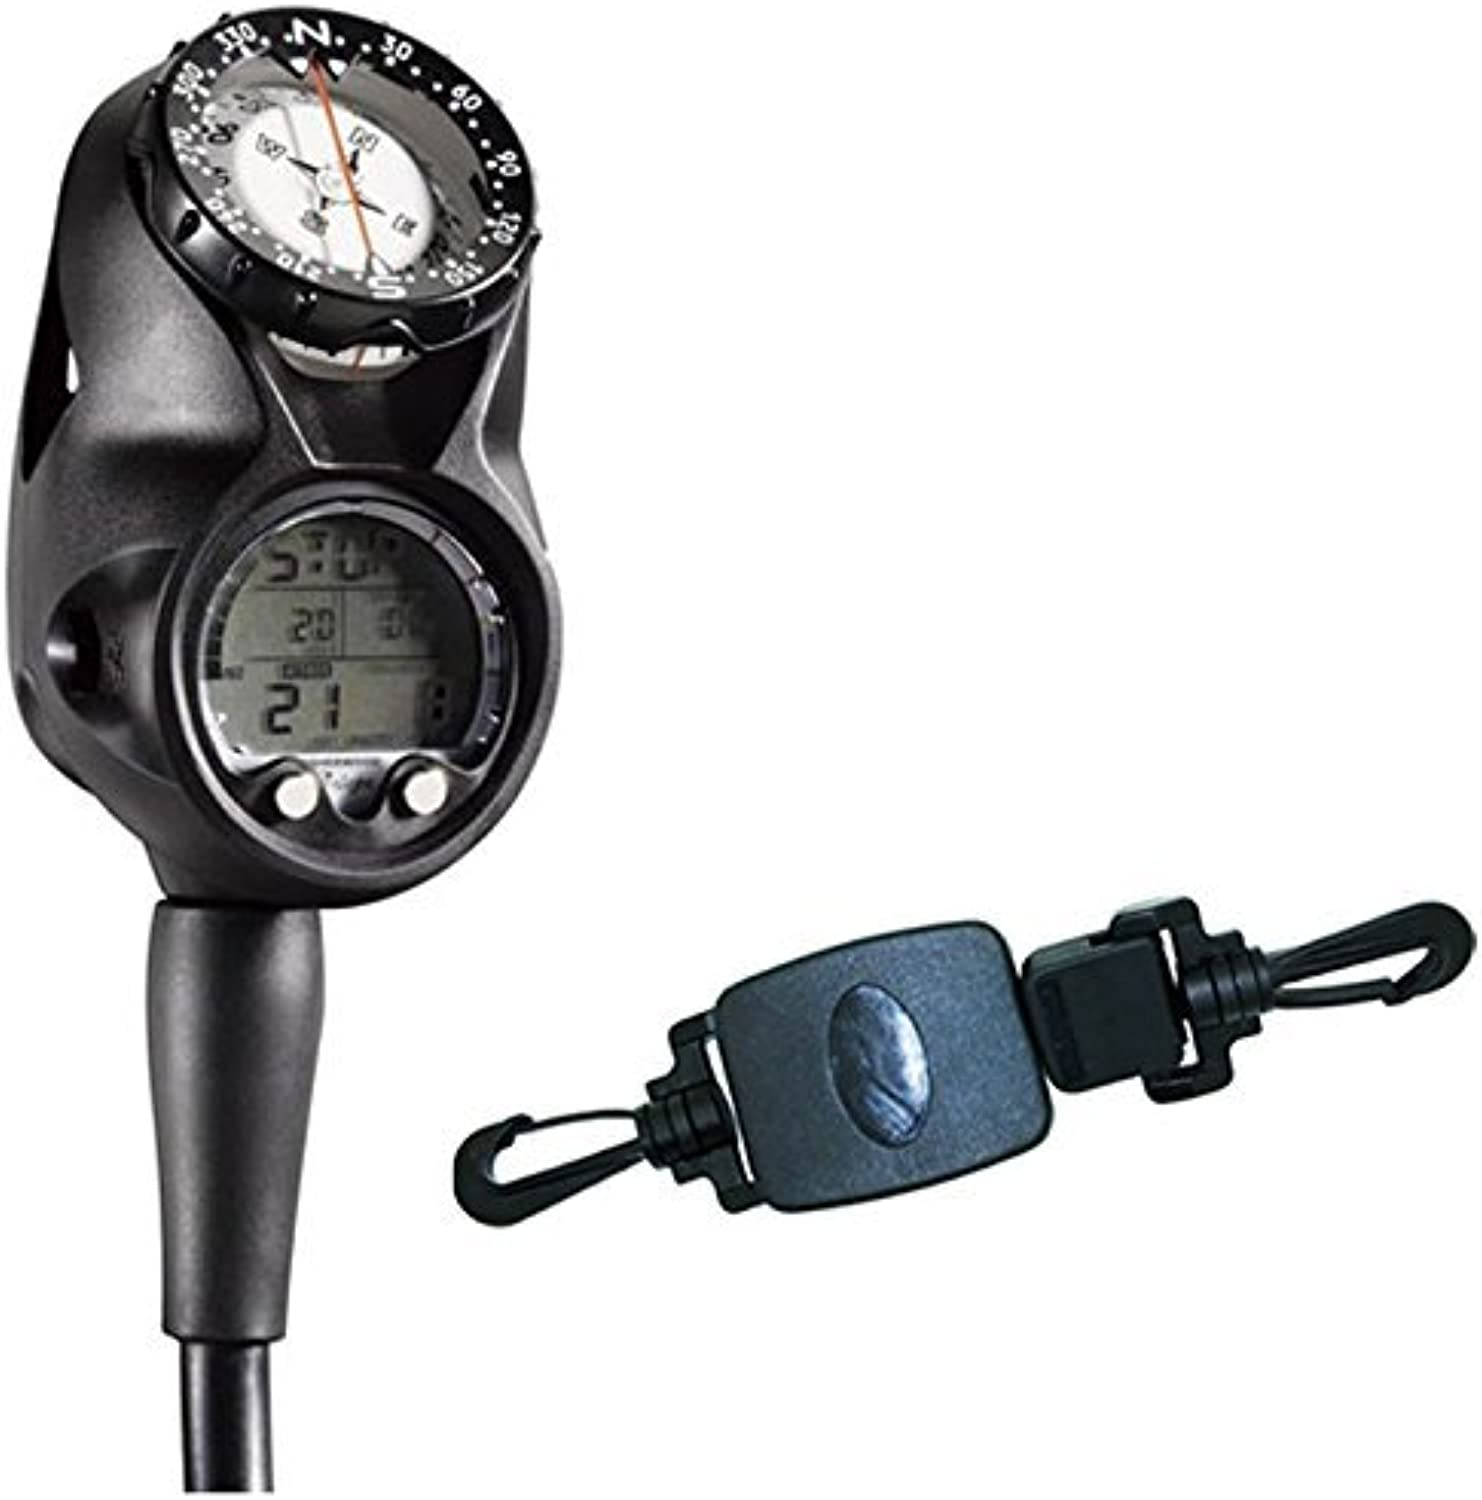 Sherwood Insight Scuba Dive Computer  Navigational Console (CR3709) w  FREE Small MultiPurpose Retractor with Dual Clips